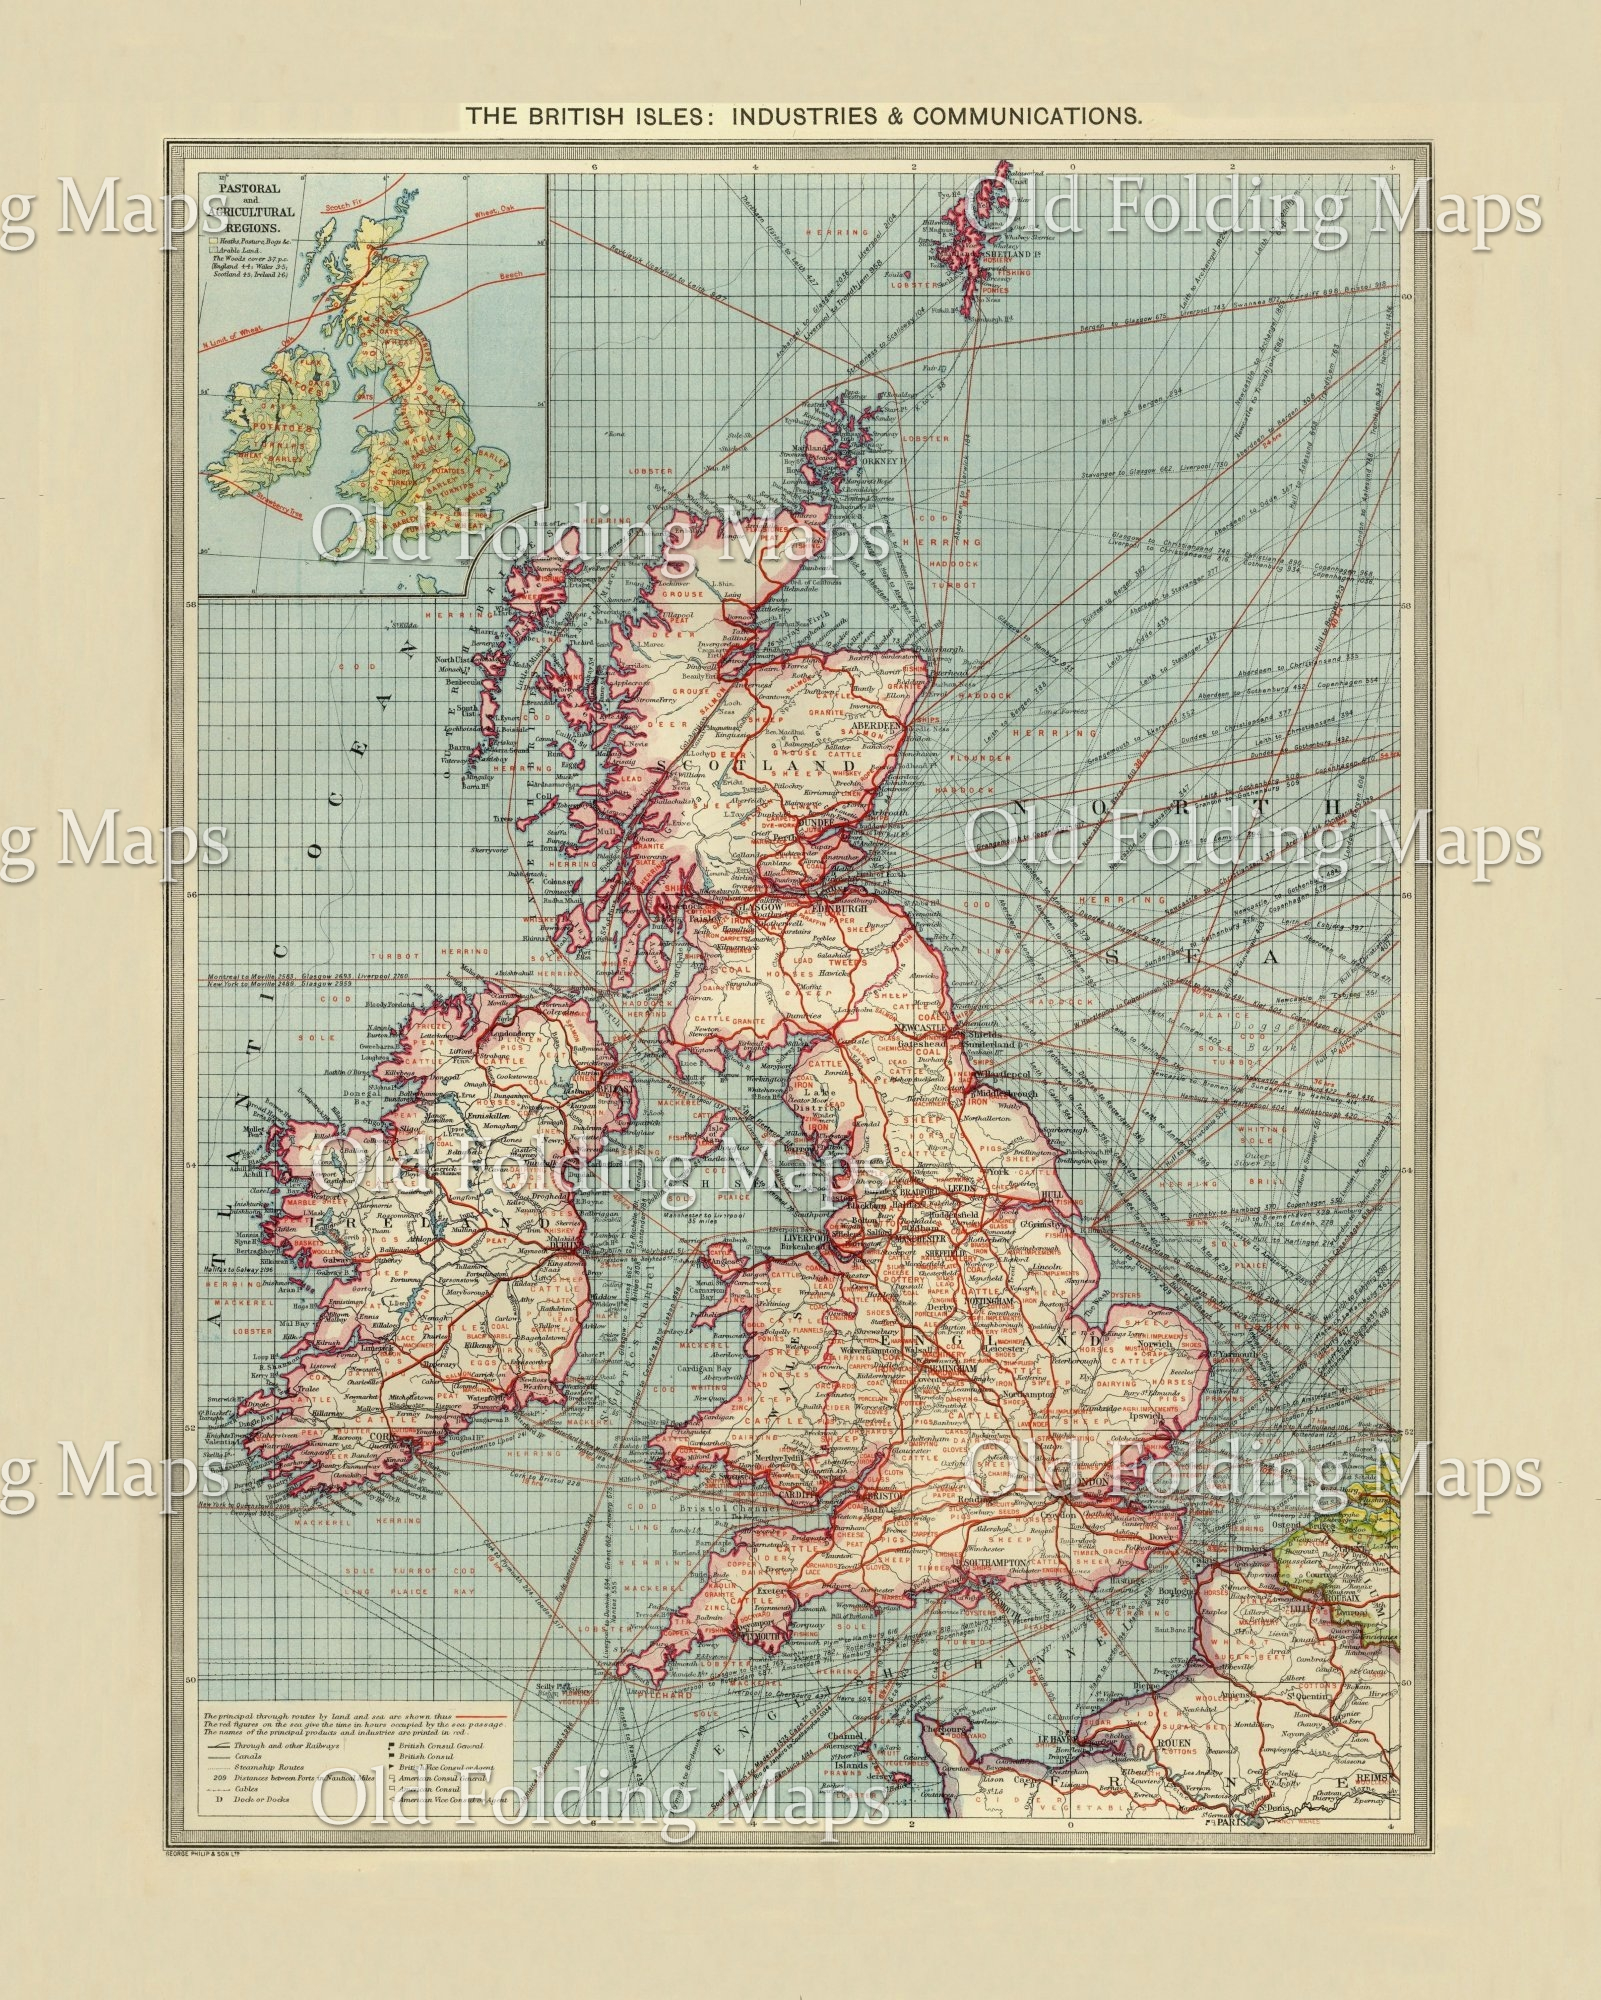 Map Of Uk 1900.Old Map Of British Isles Industries And Communications Circa 1900